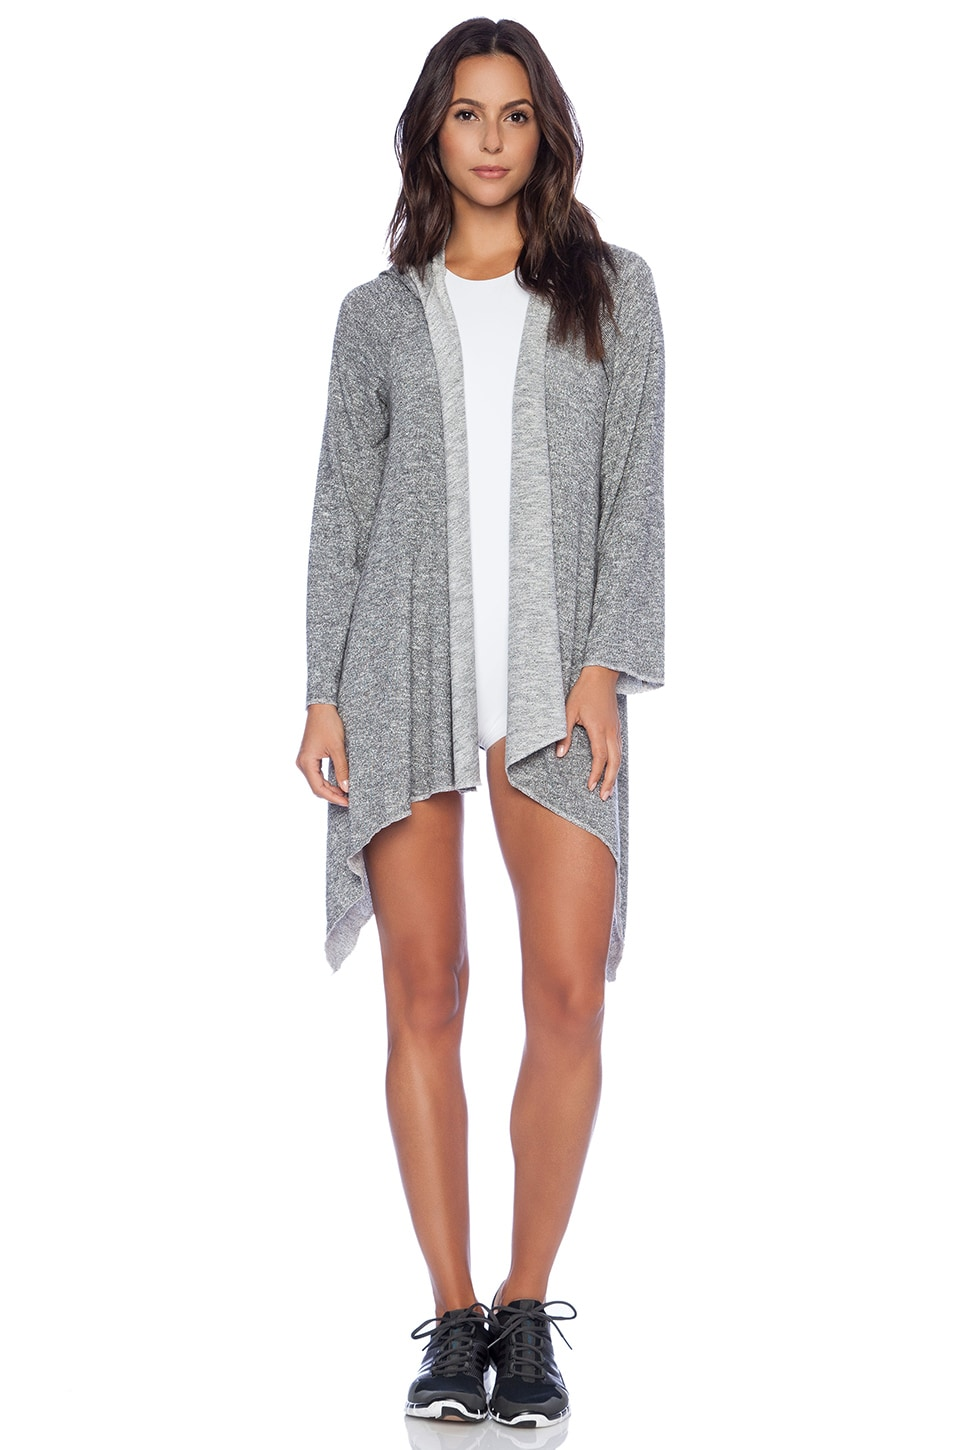 Blue Life Slouchy Hooded Cardigan in Galaxy Metallic